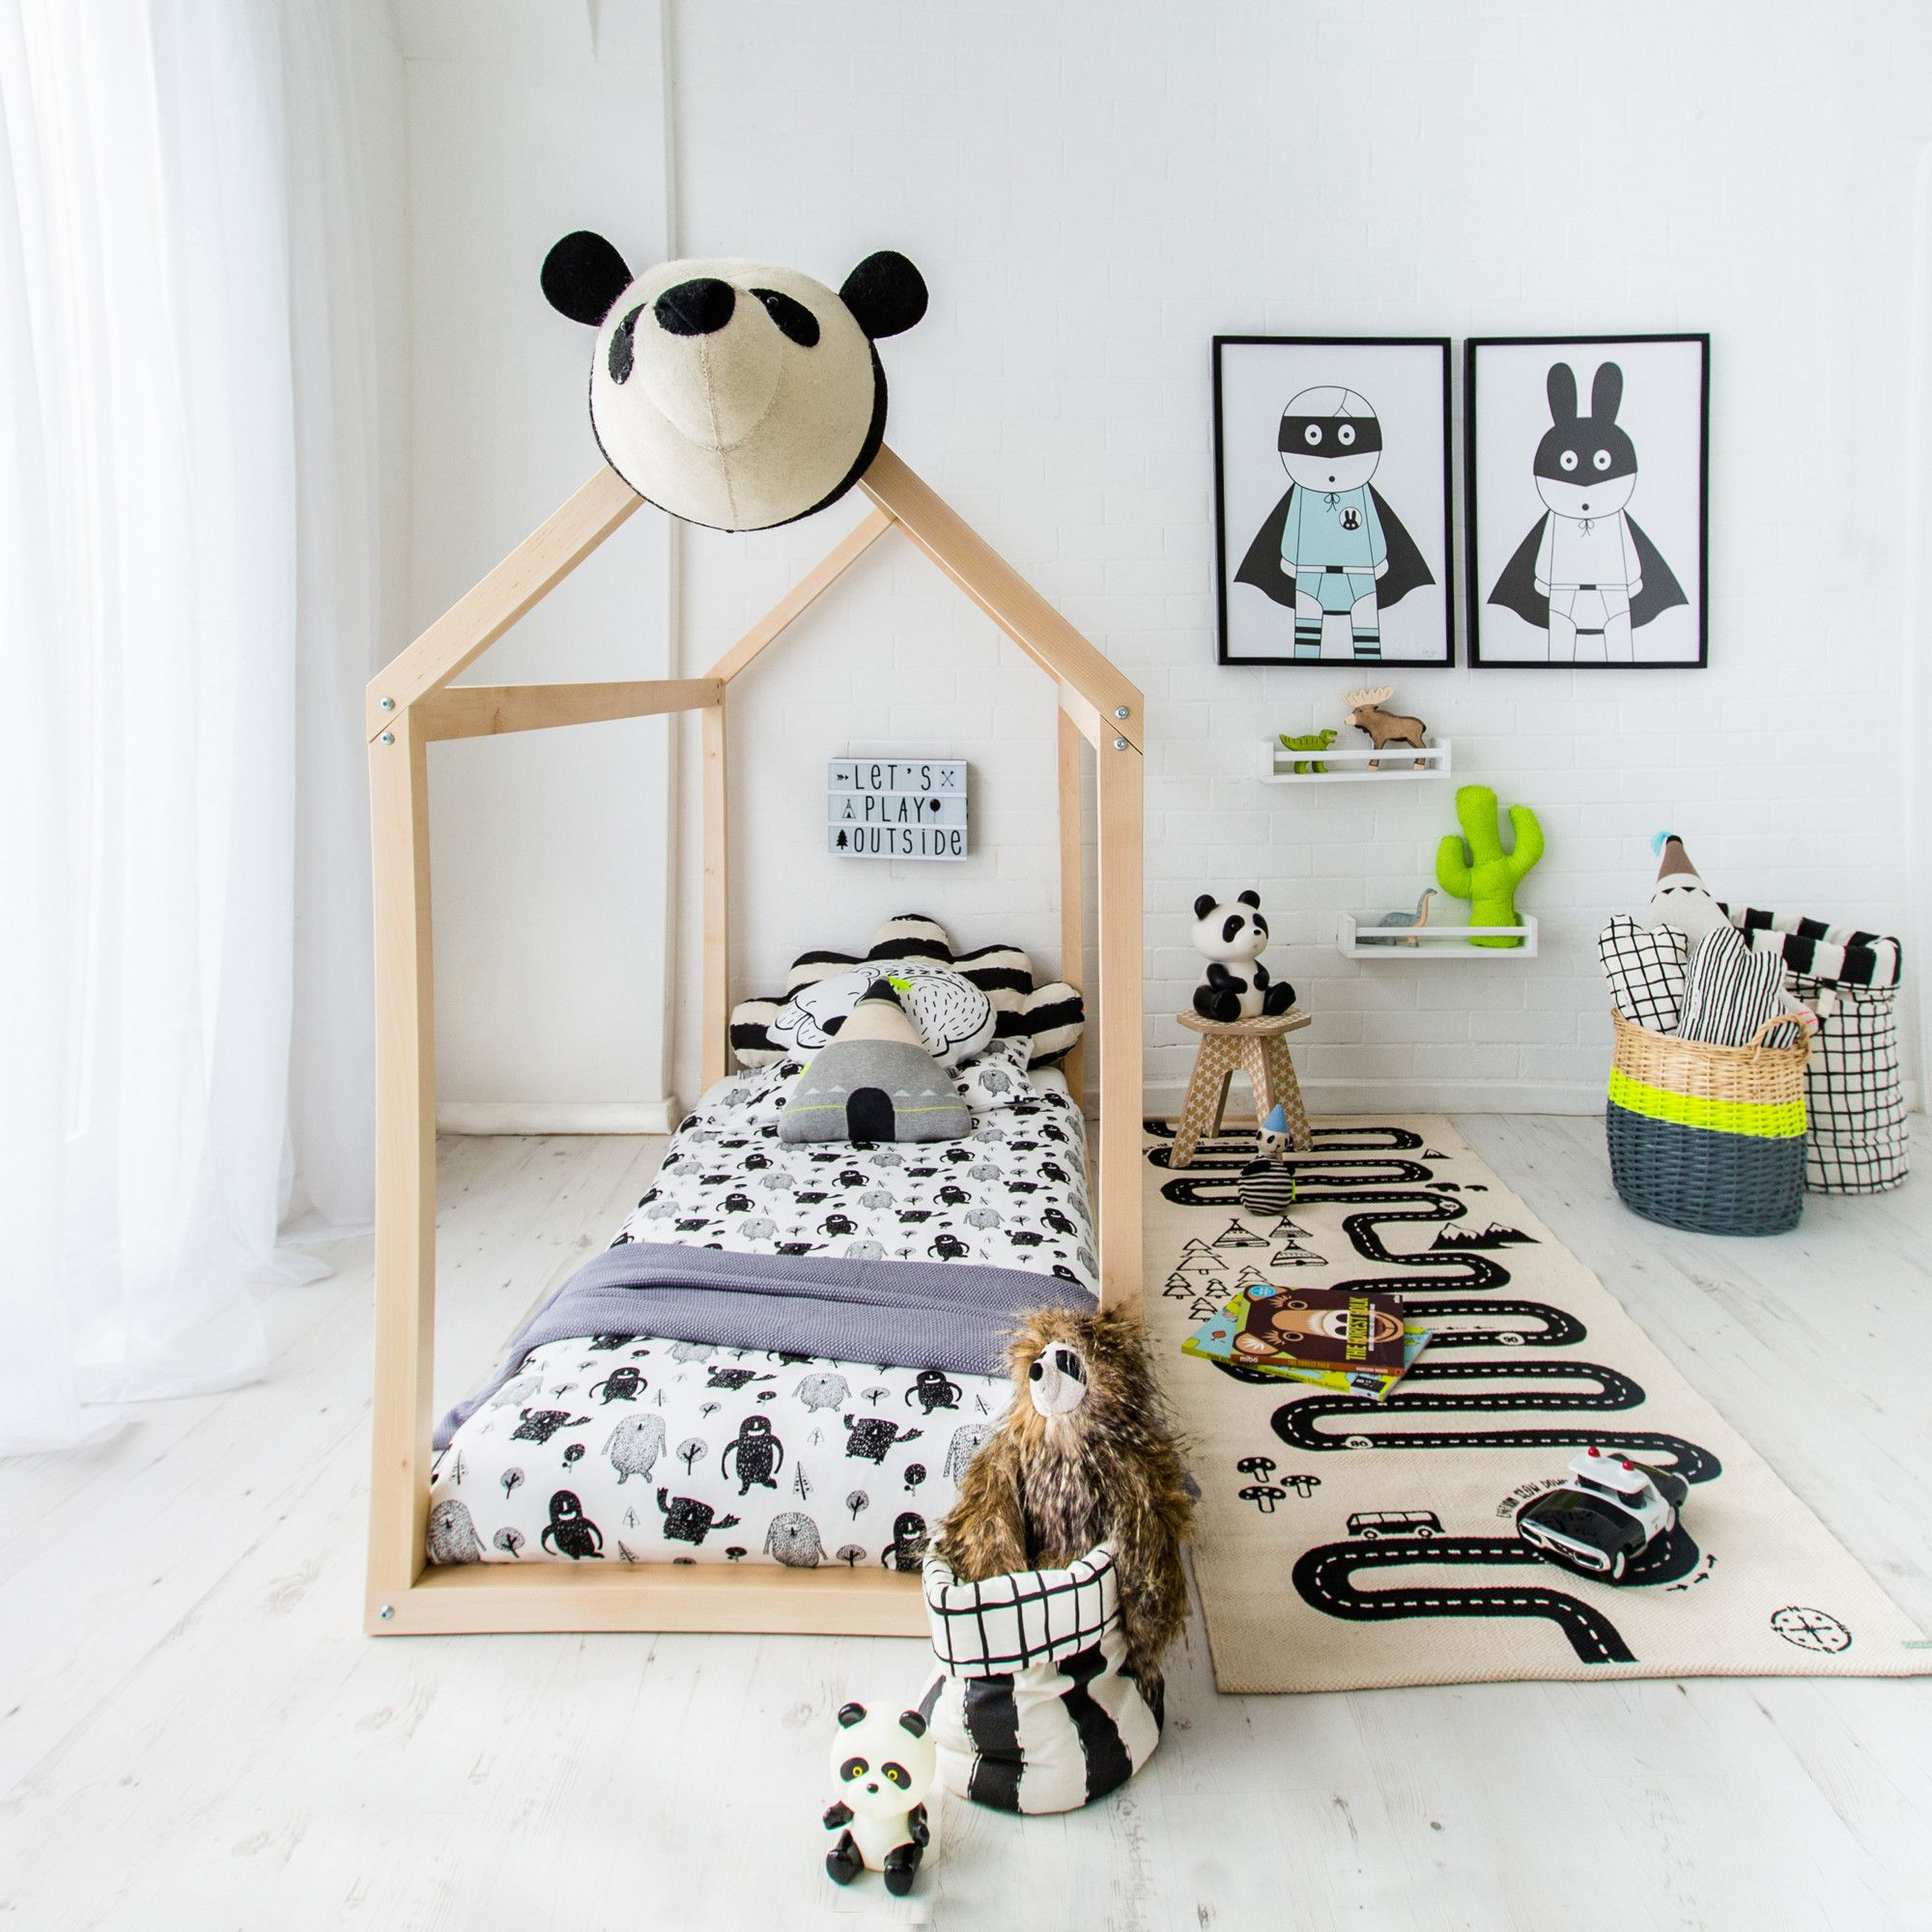 Summer Camp! Children's Bedroom, designed and styled by @bobbyrabbitkids